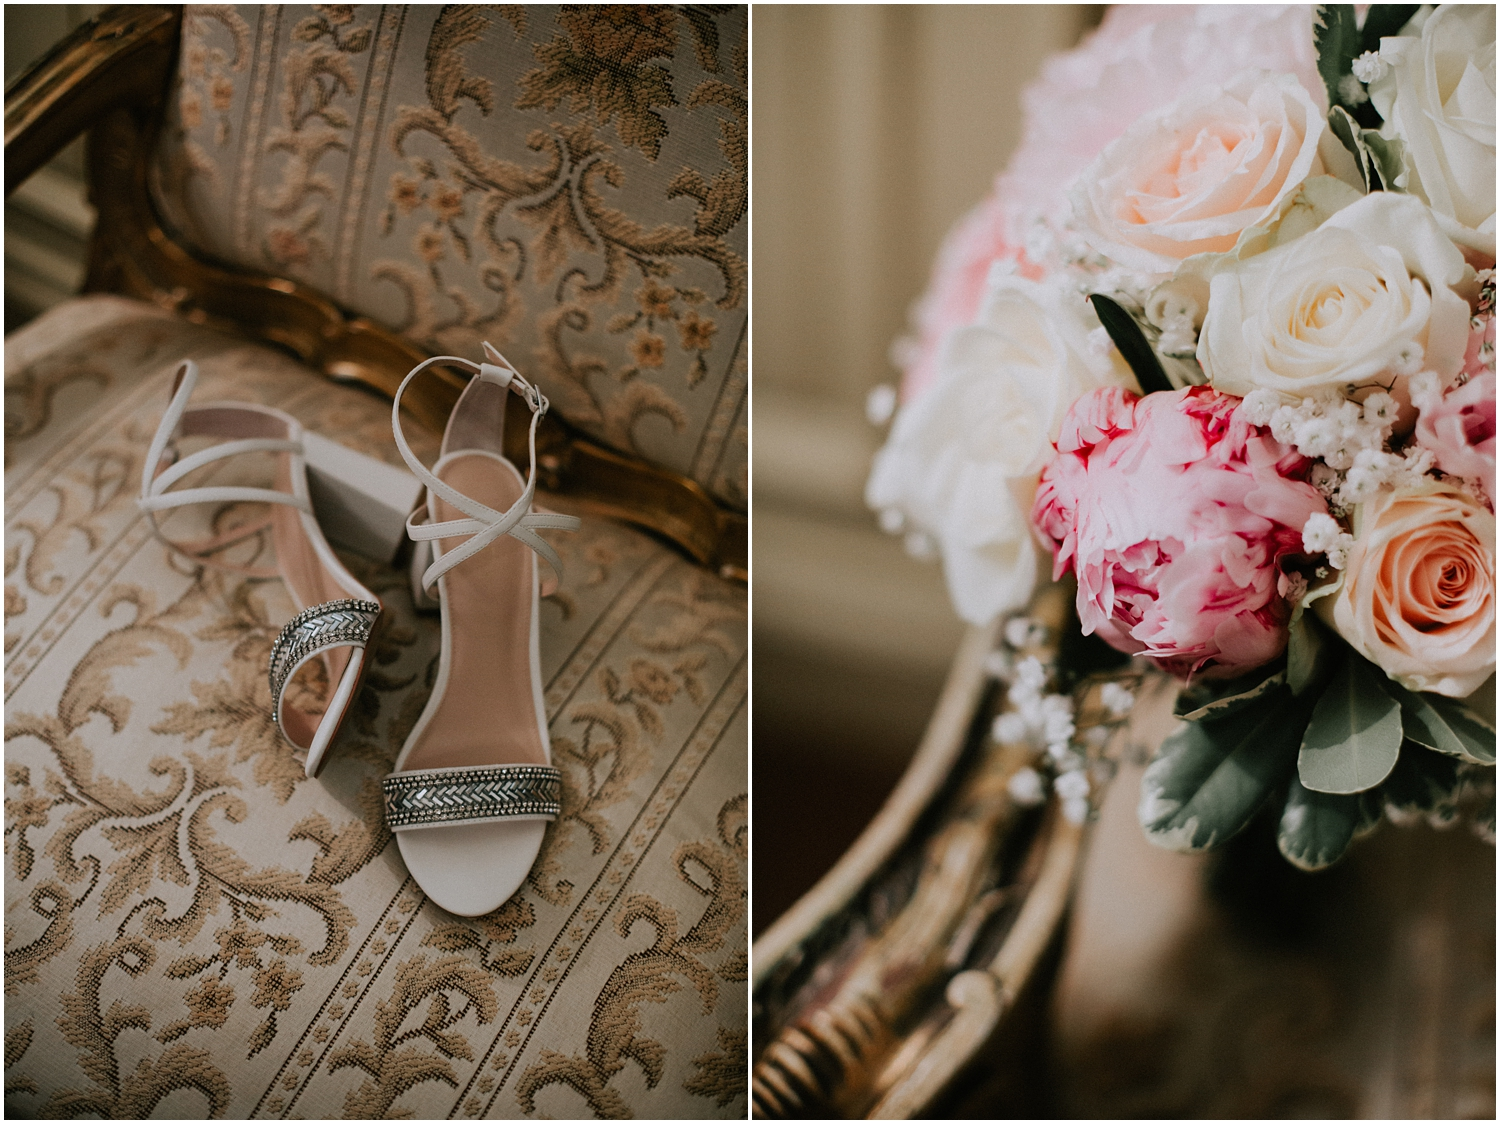 Kurt Geiger shoes and bridal bouquet from Eros Fairytale Flowers